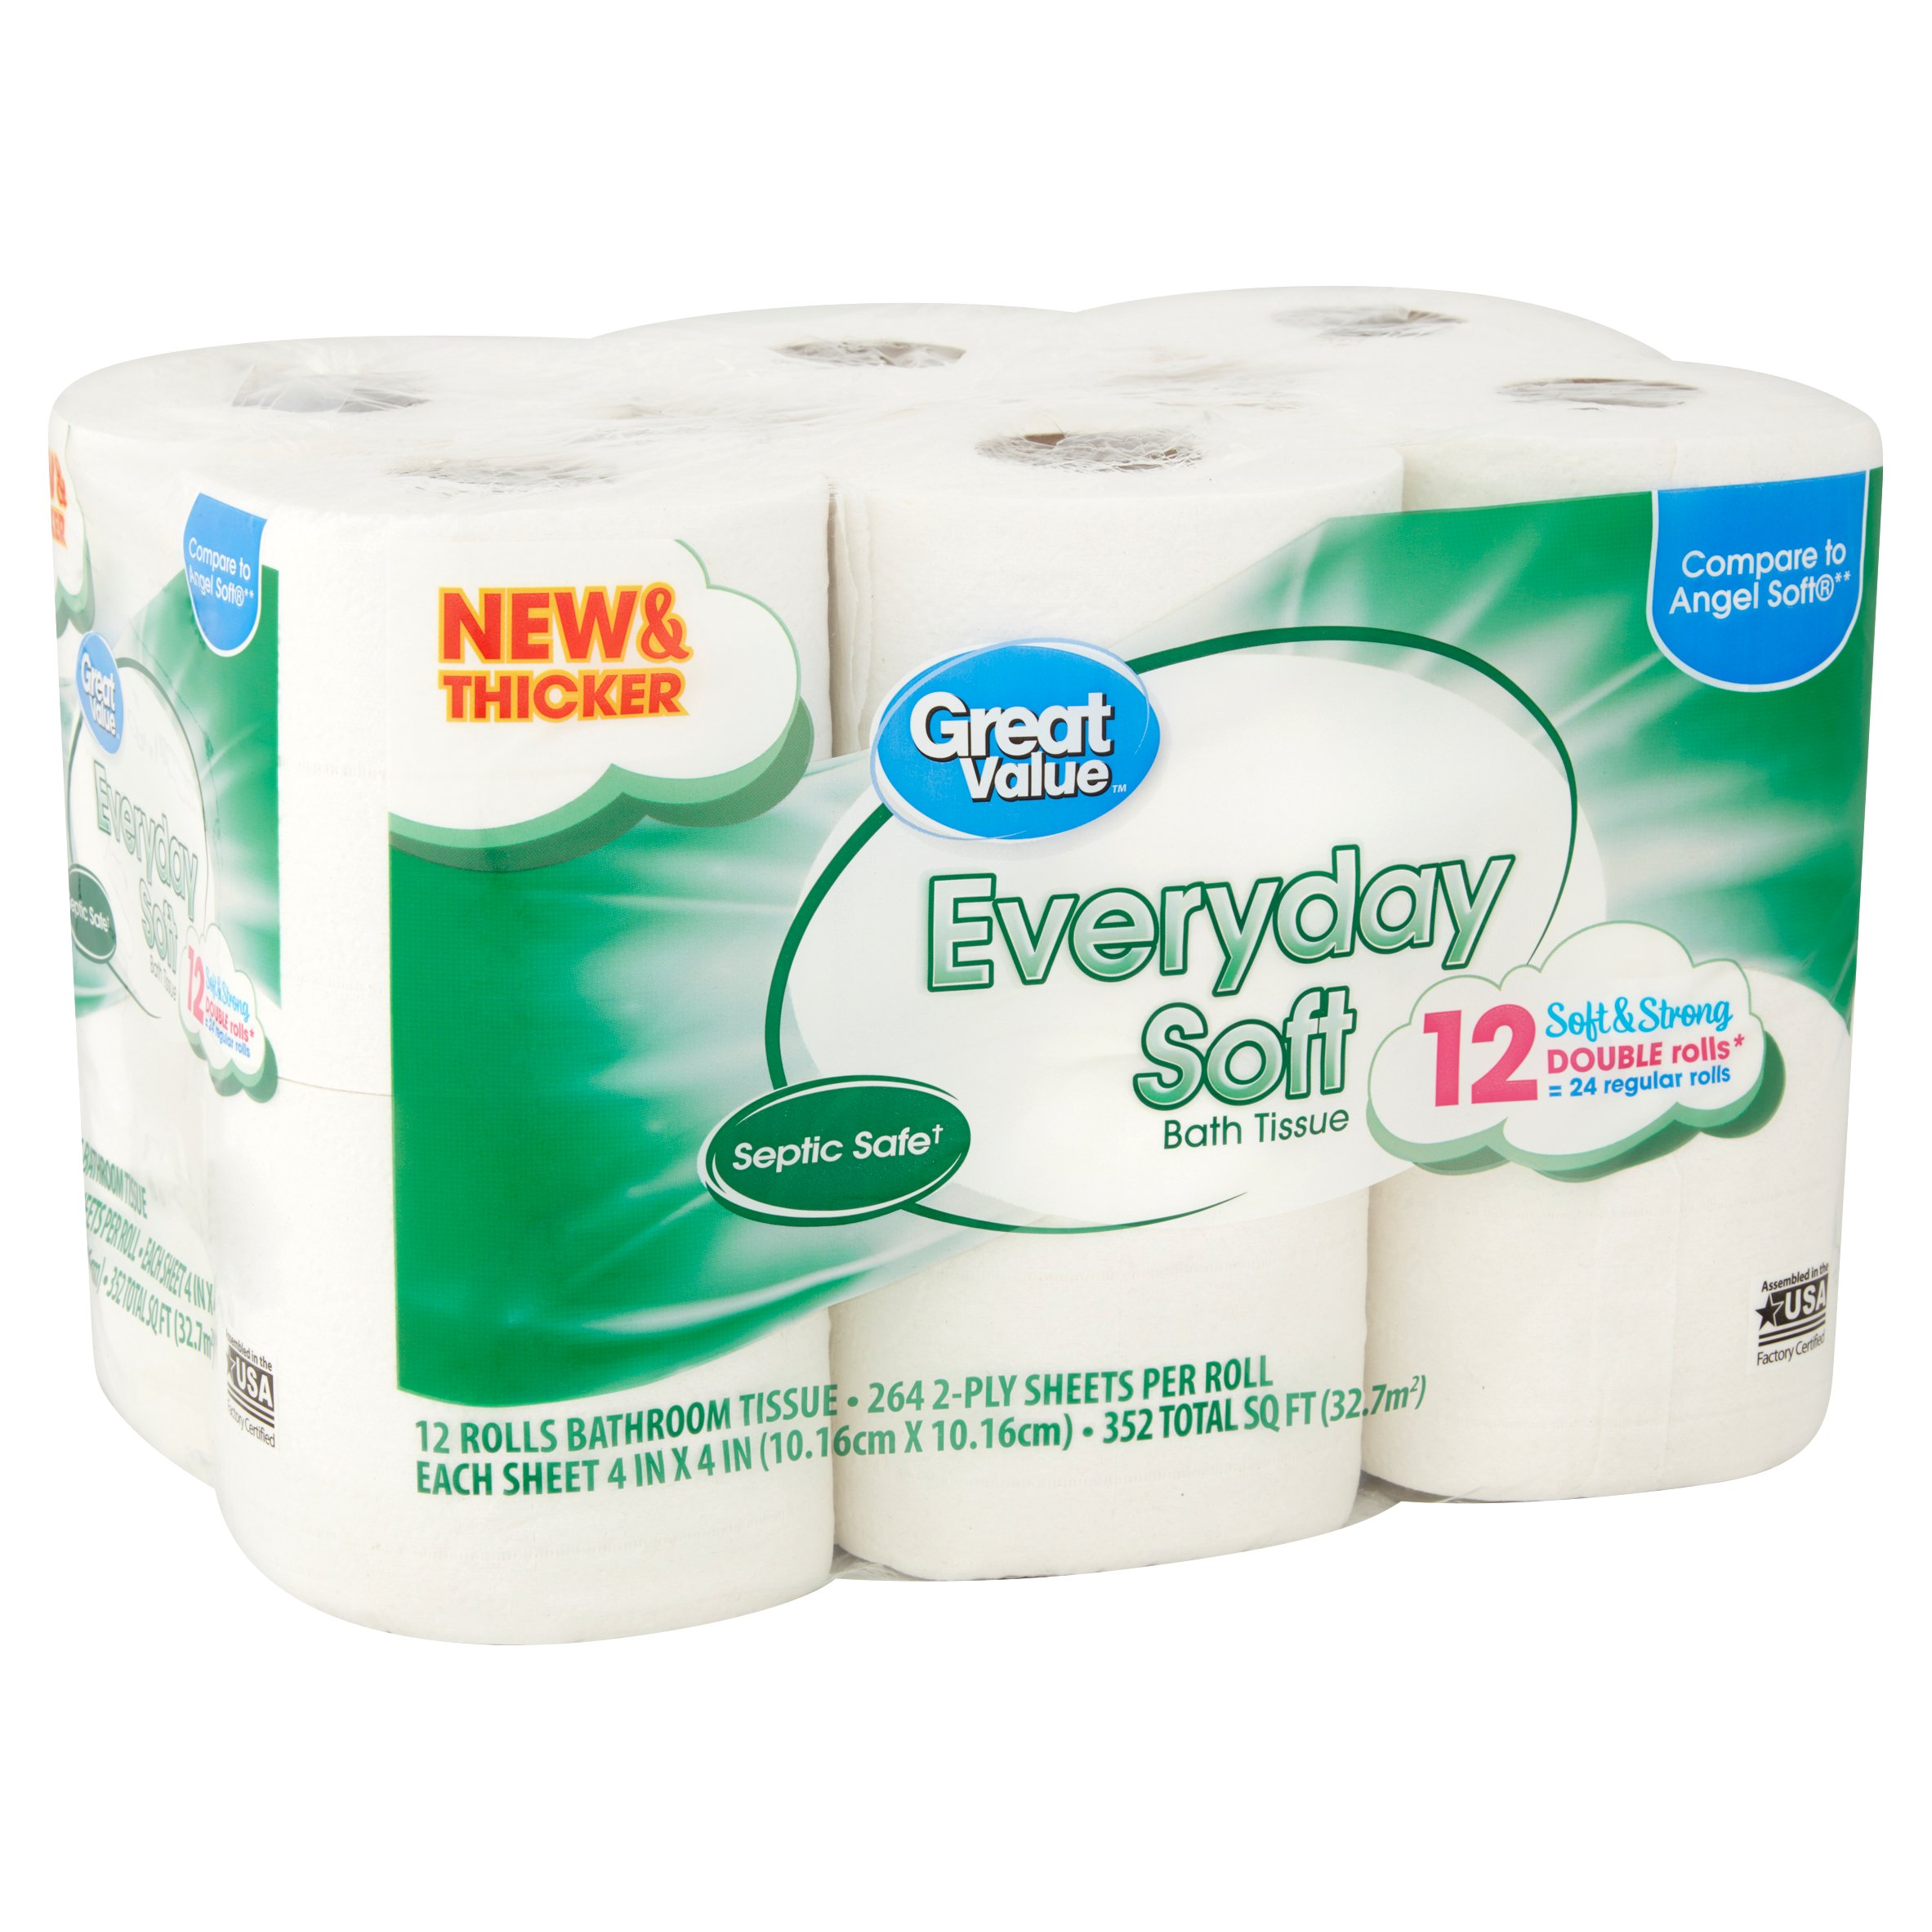 great value bath tissue, everyday soft, 12 double rolls - walmart